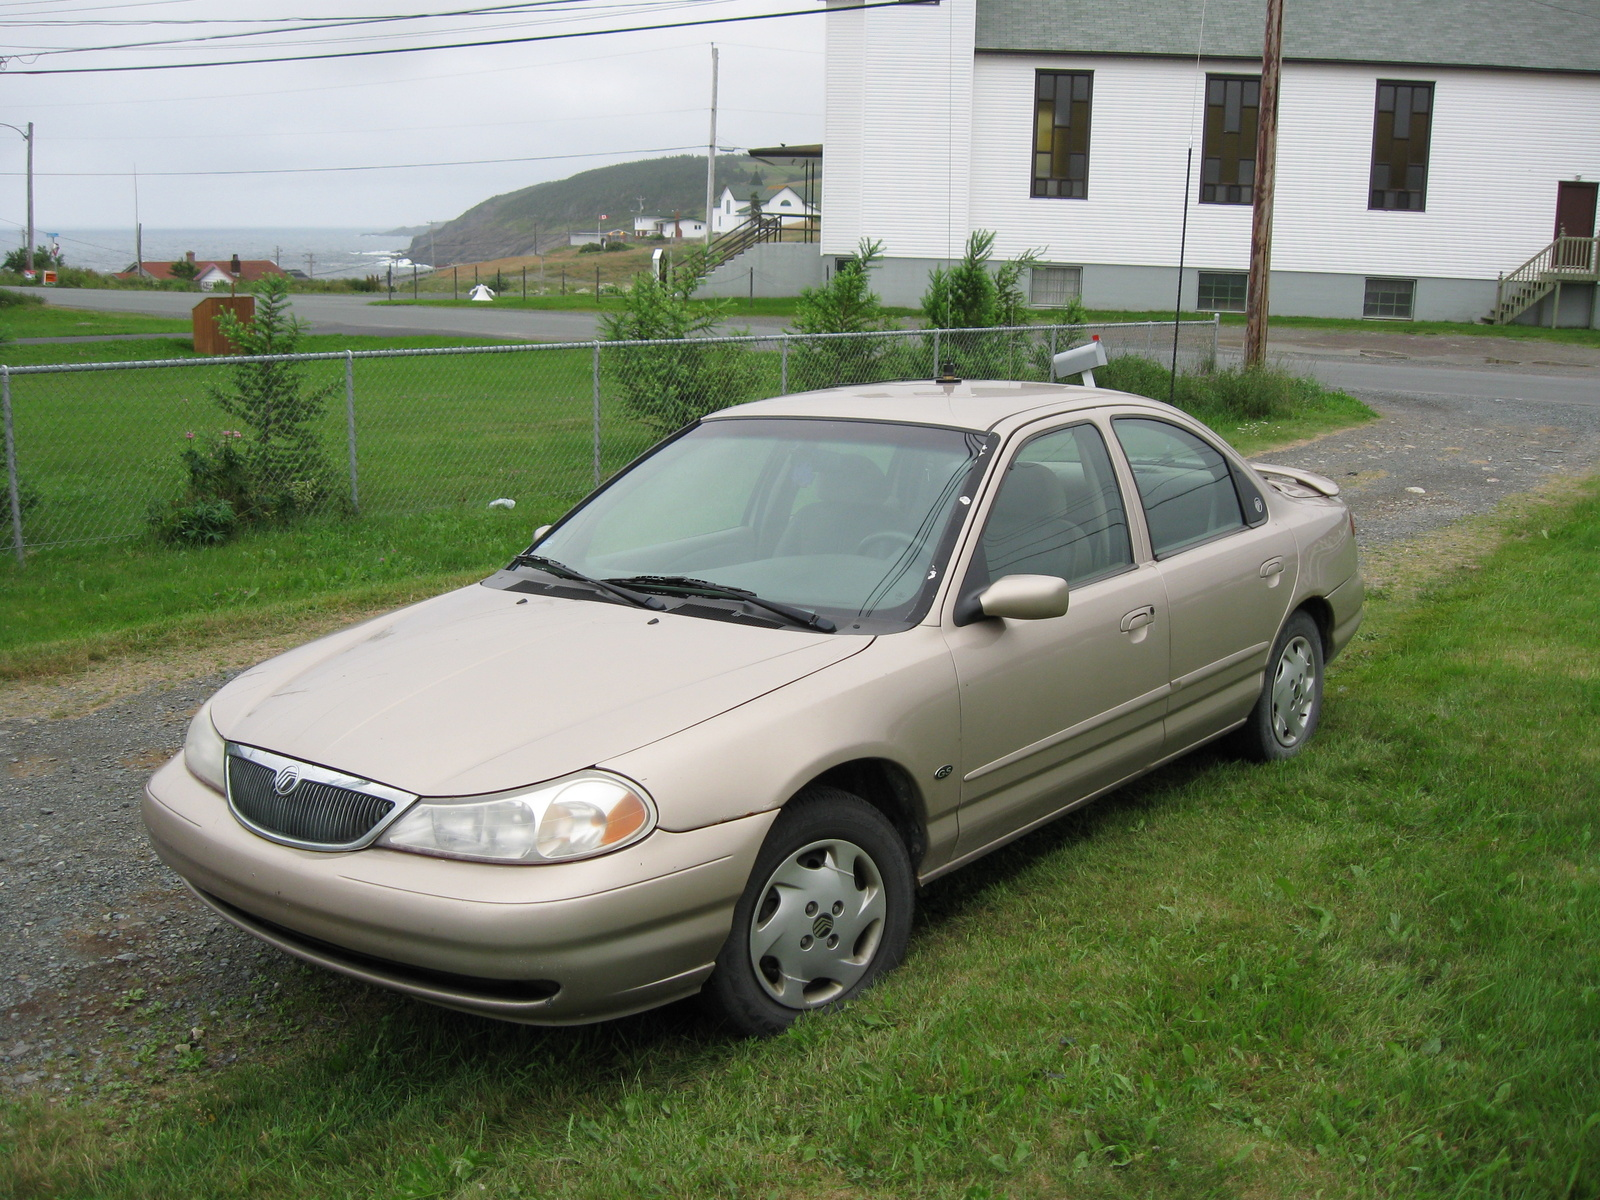 1998 Mercury Mystique 4 Dr GS Sedan picture